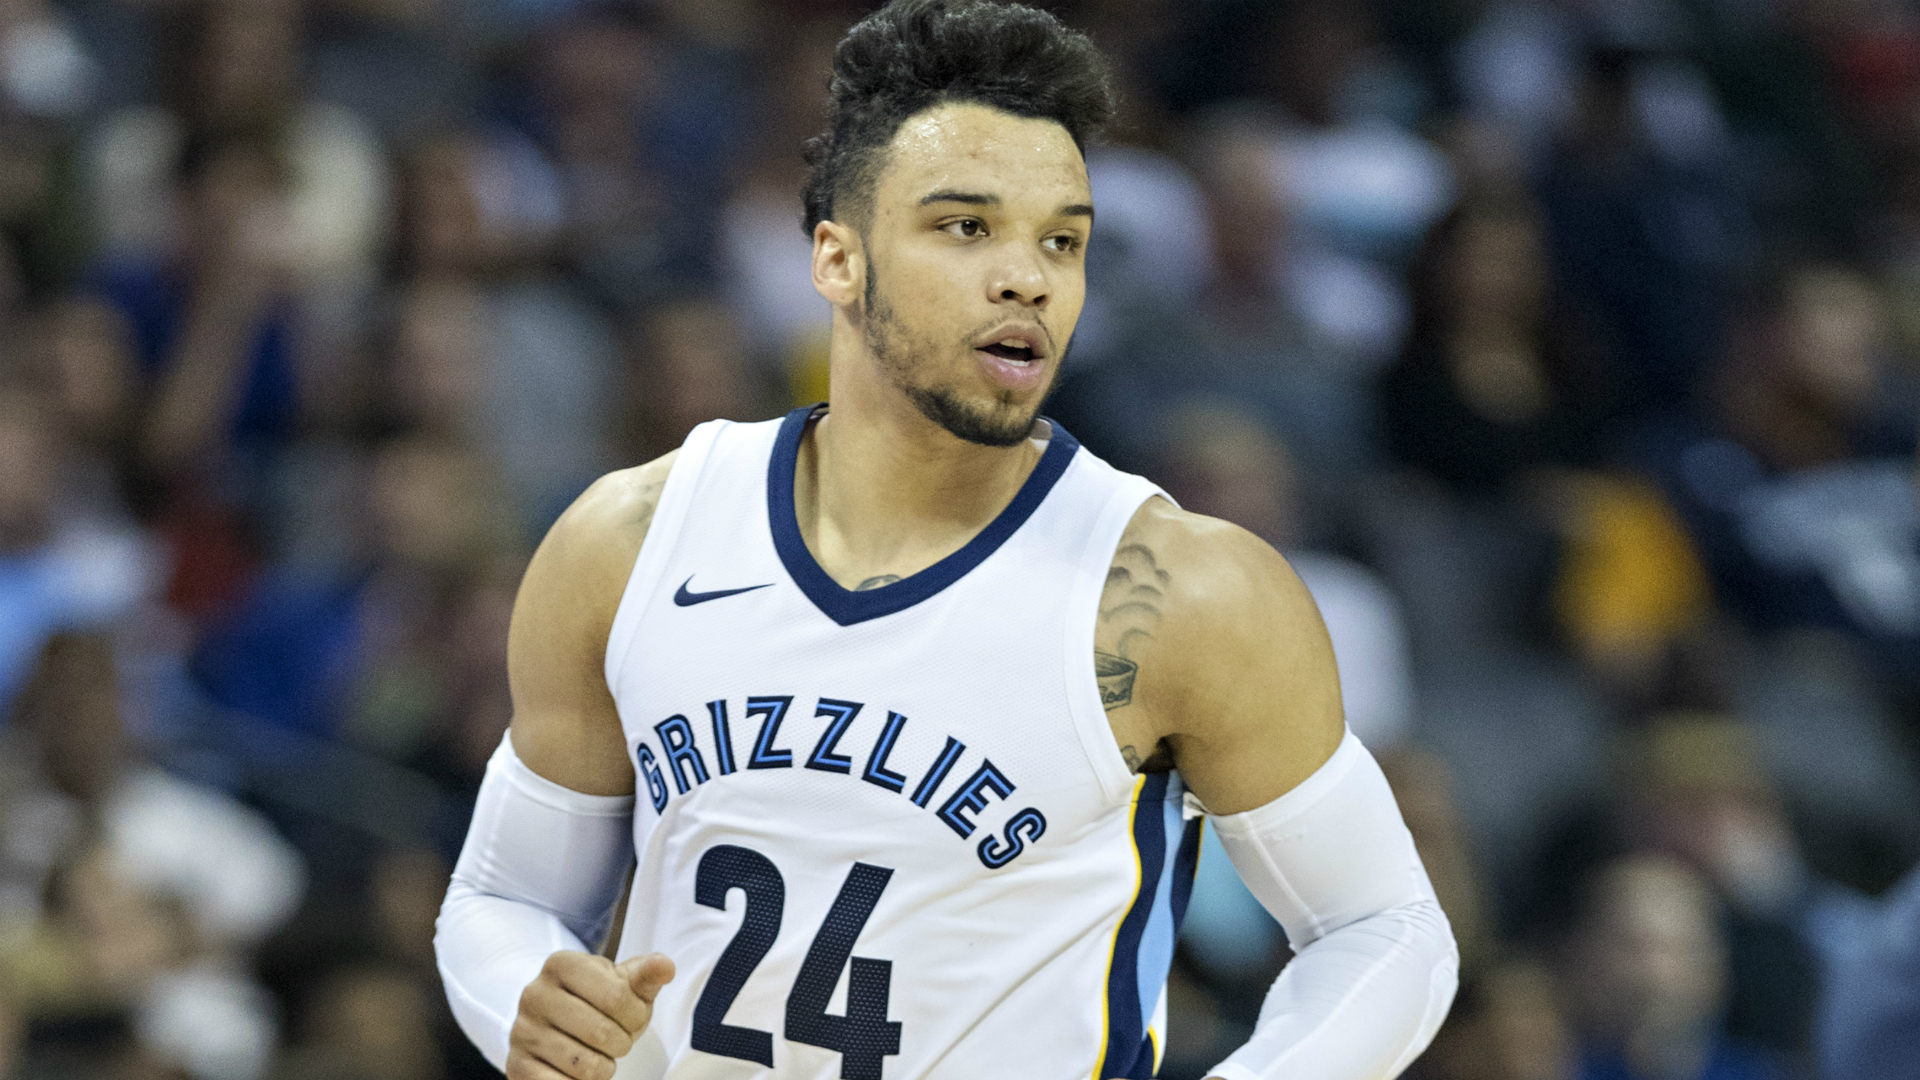 Dillon Brooks injury update: Grizzlies G (toe) to have surgery, expected to miss rest of season